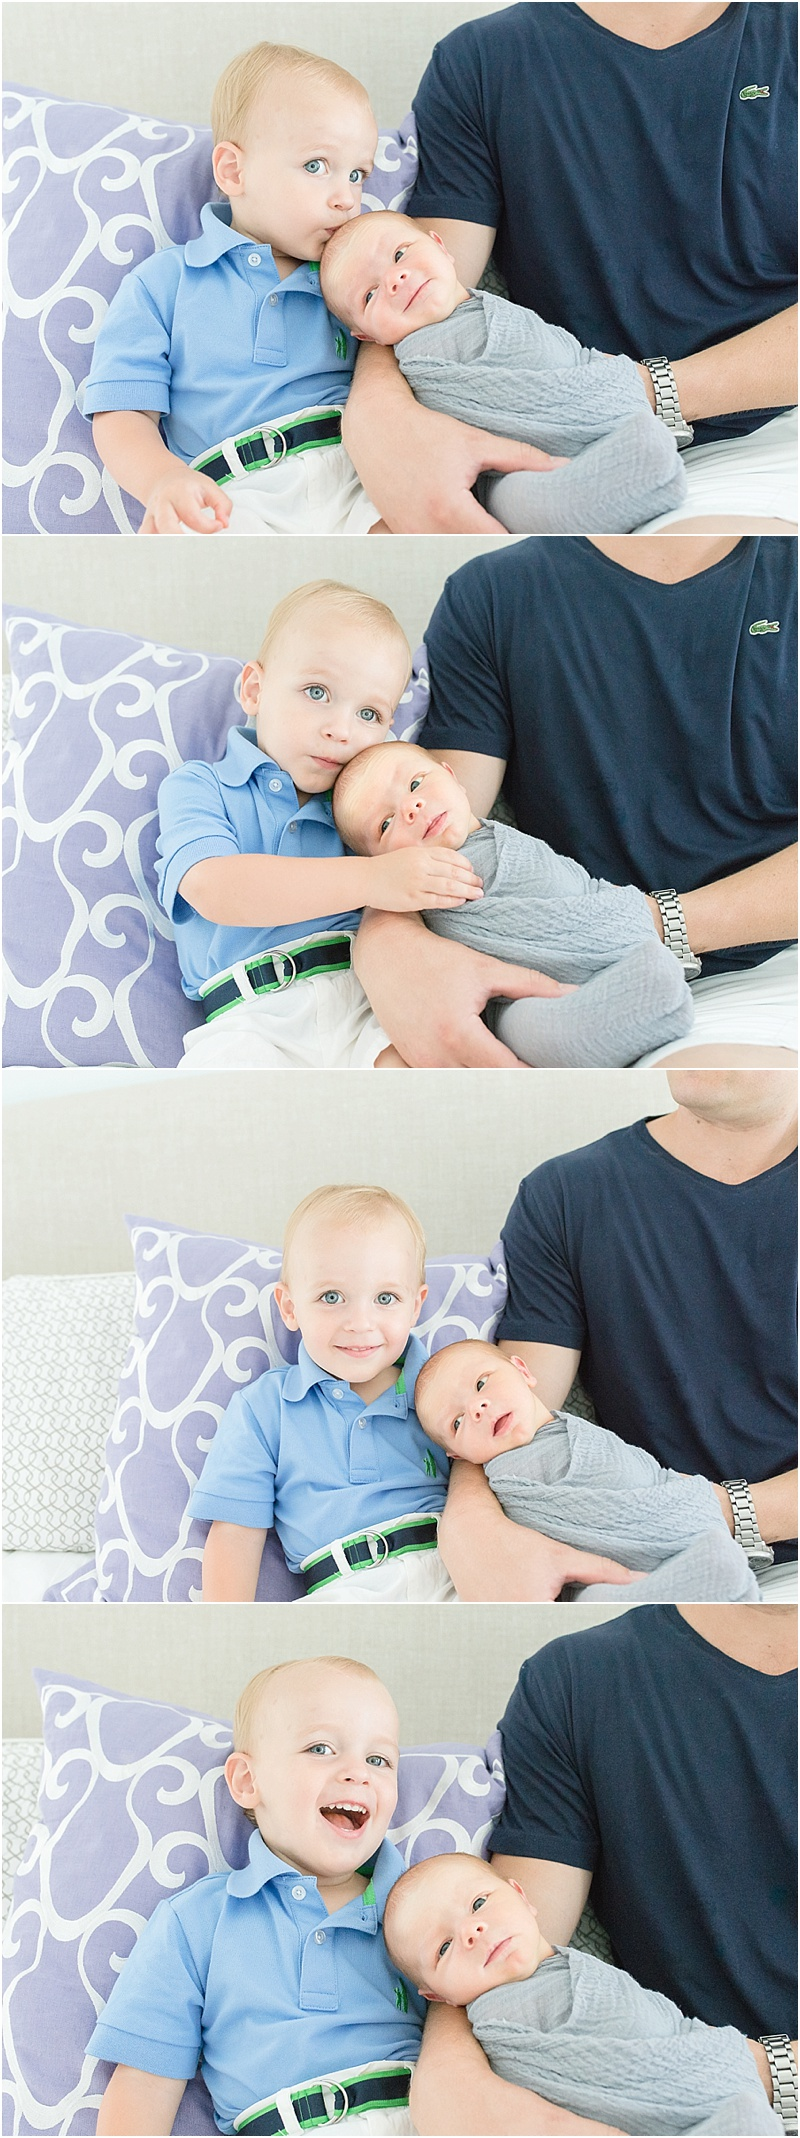 Lifestyle Newborn Session in Ashburn, VA | Kristin Cornely Photography